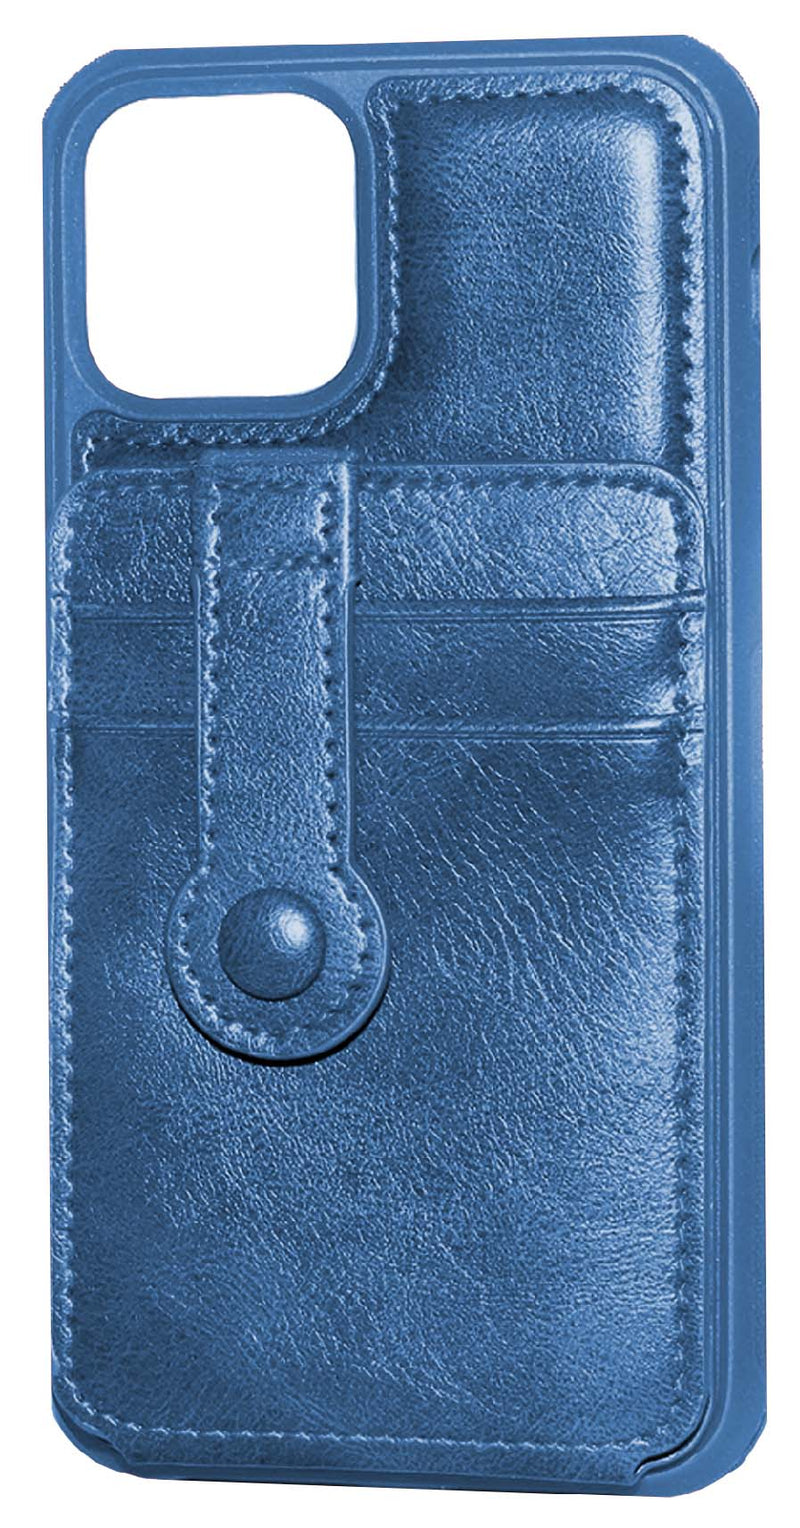 Navy Blue iPhone 11 Pro MAX Back Leather Wallet Case